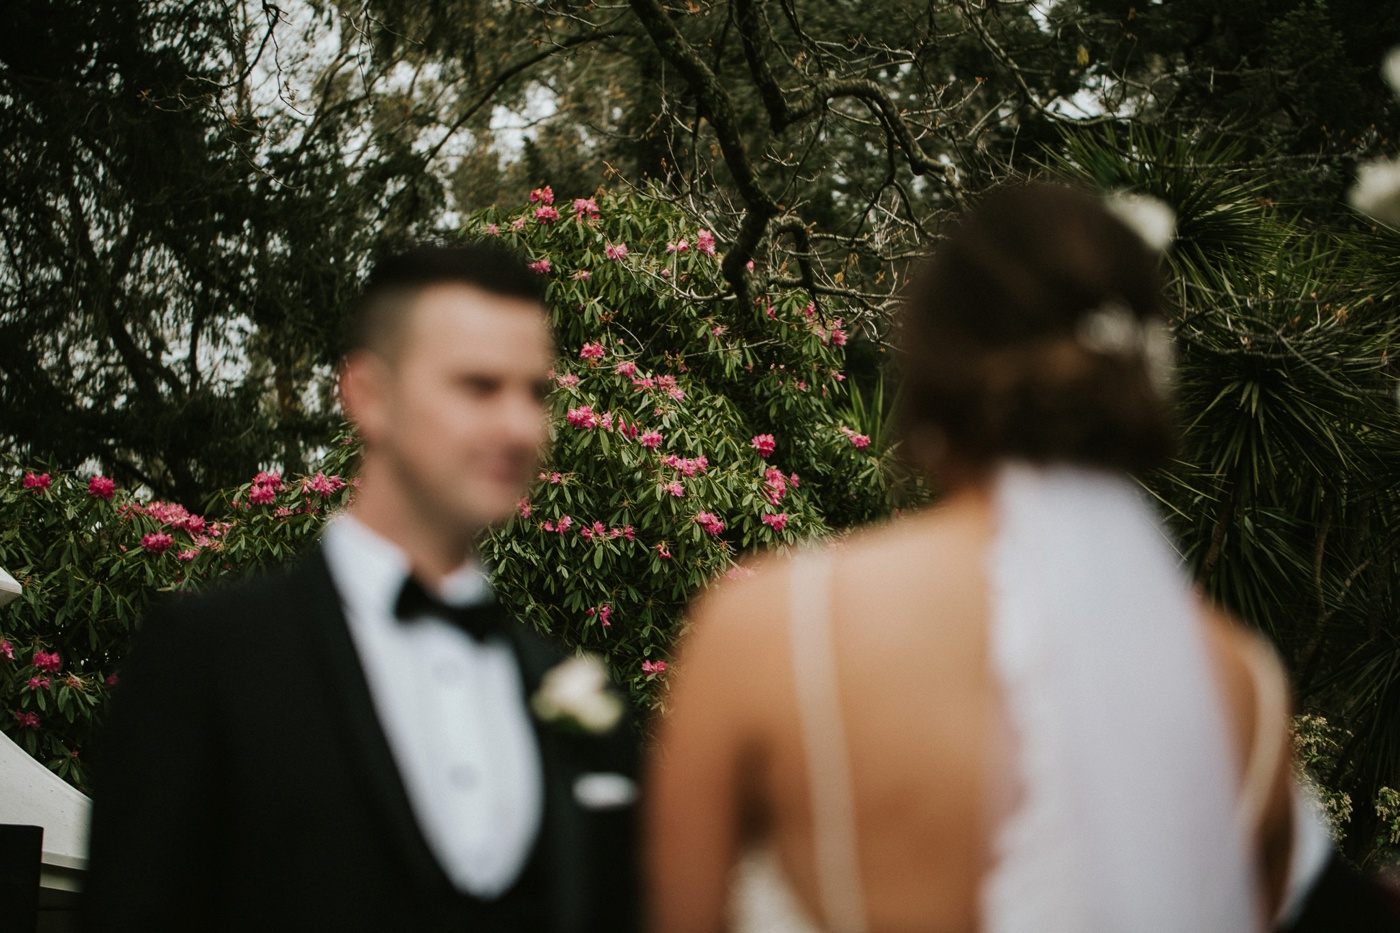 wesleybianca_dandenongs-sherbrooke-poets-lane-wedding_melbourne-quirky-fun-candid-wedding-photography_38